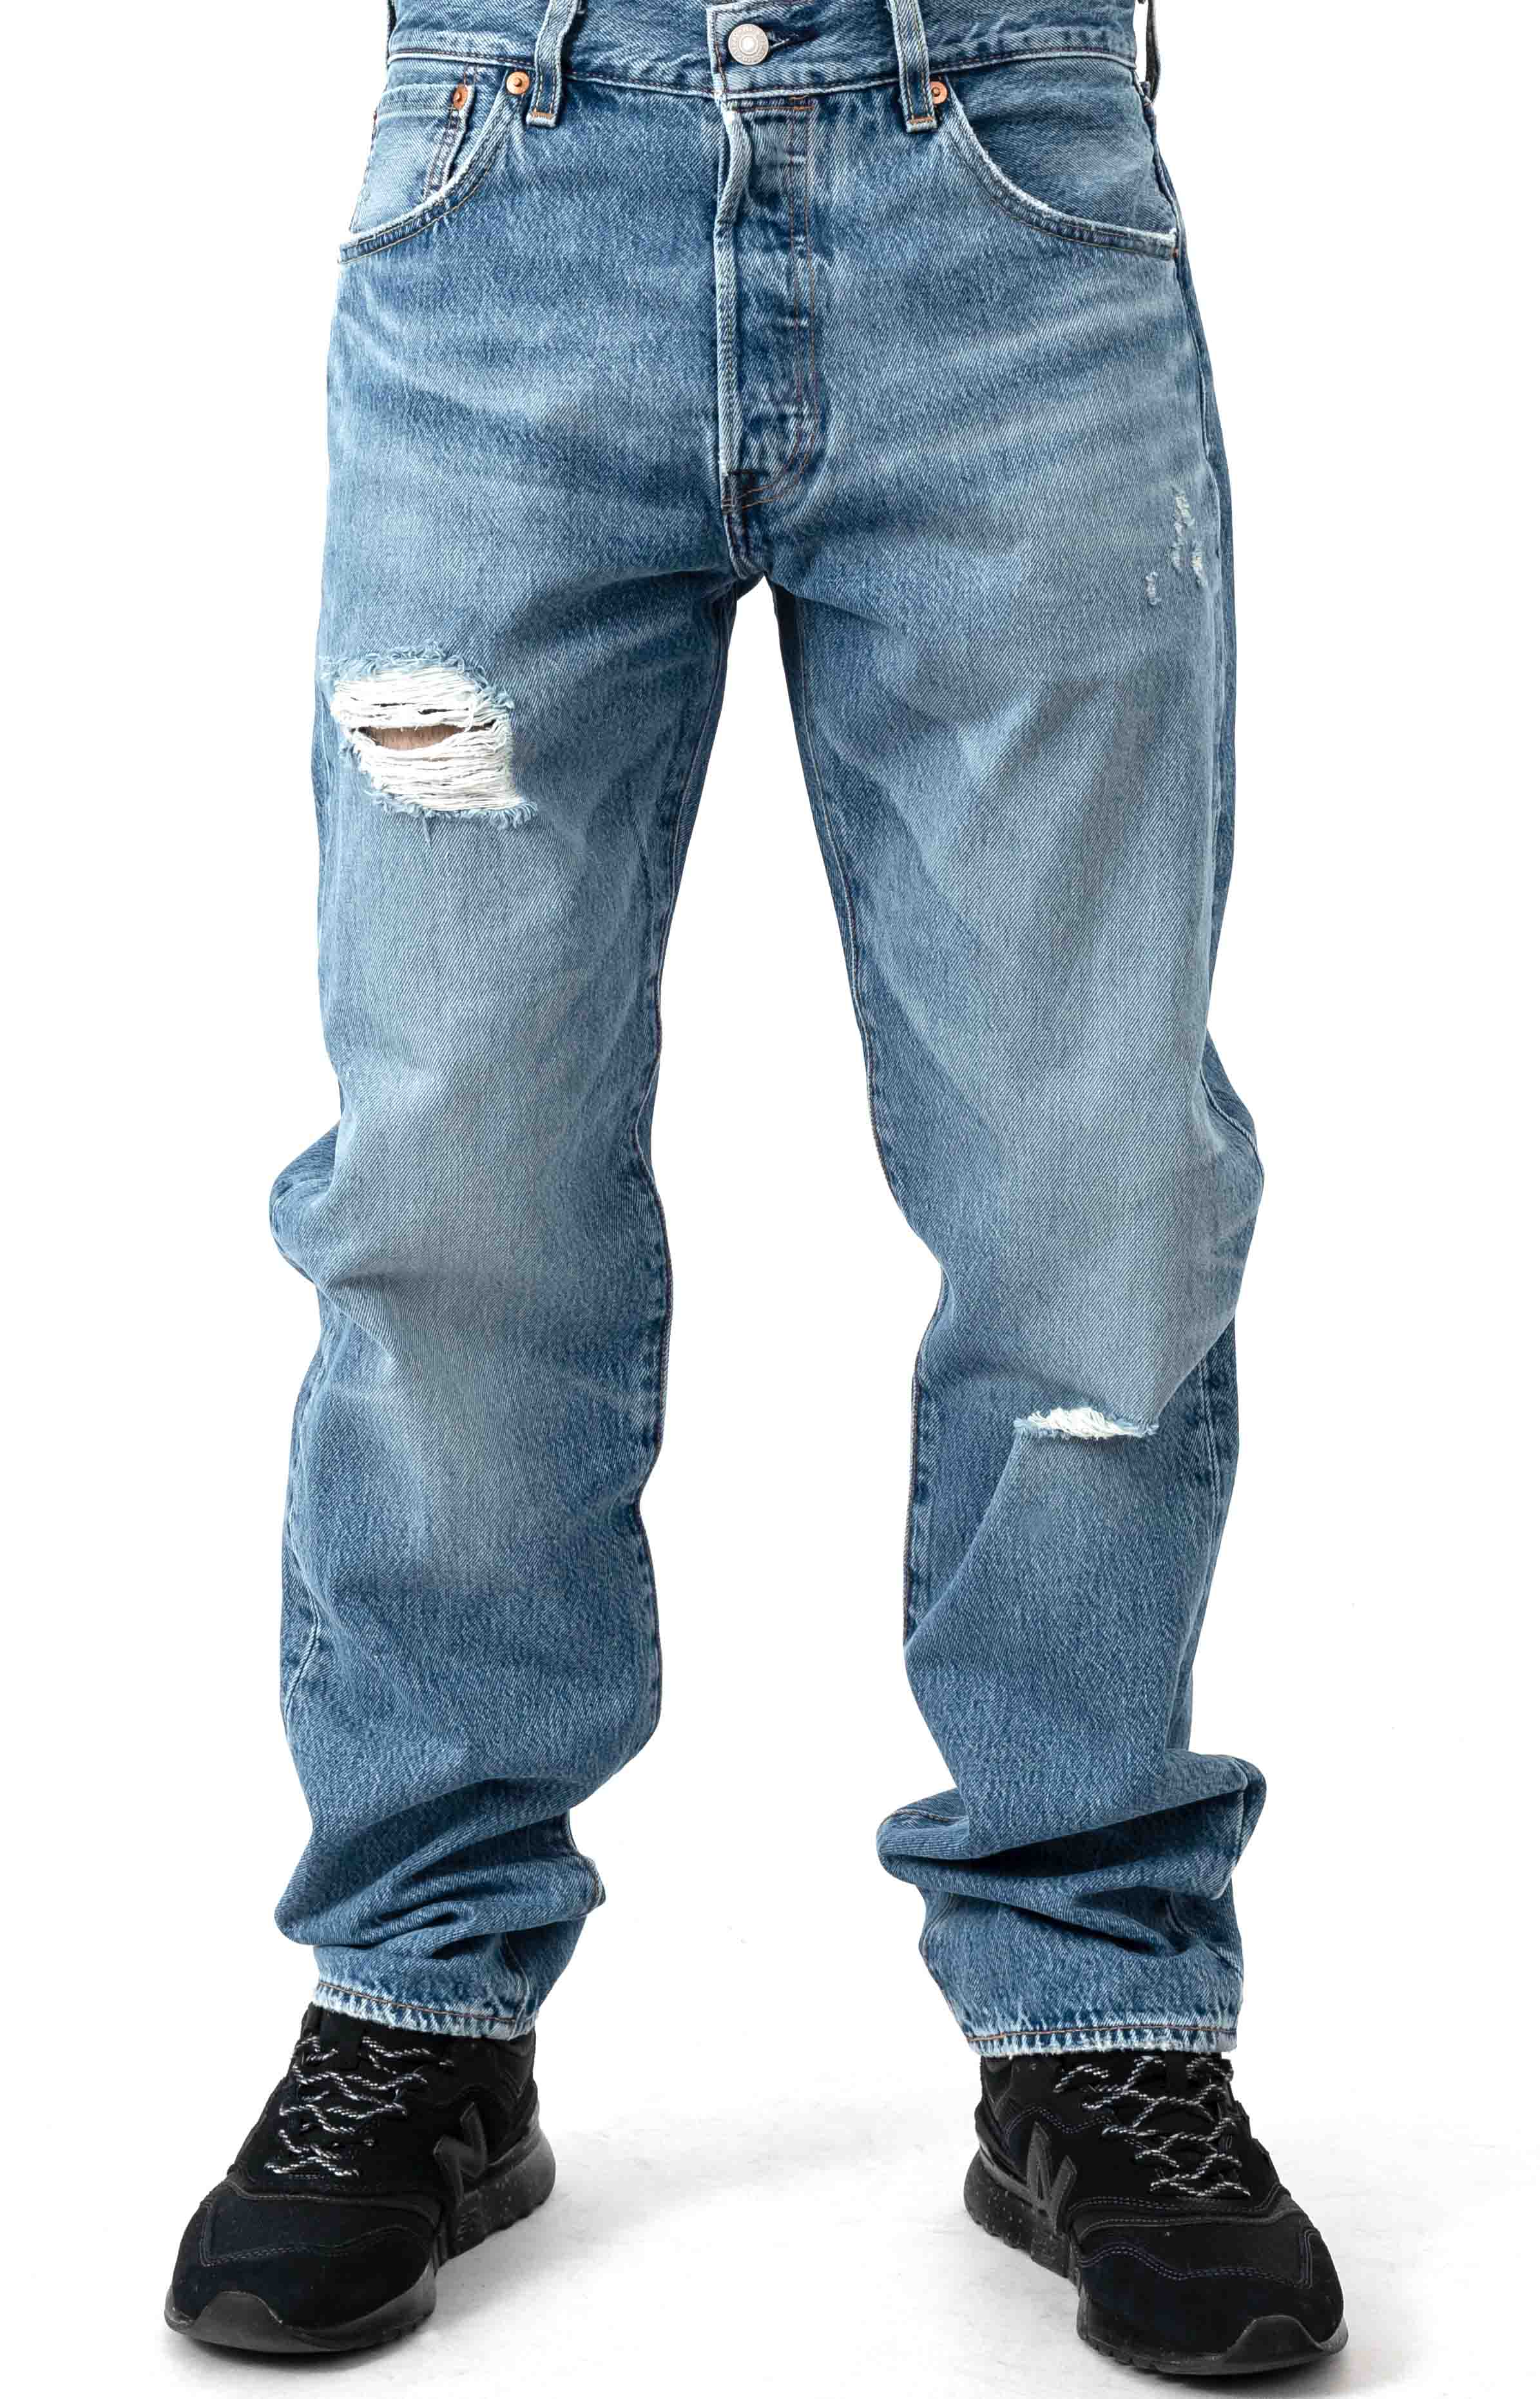 501 '93 Straight Jeans - Bike Medium Wash